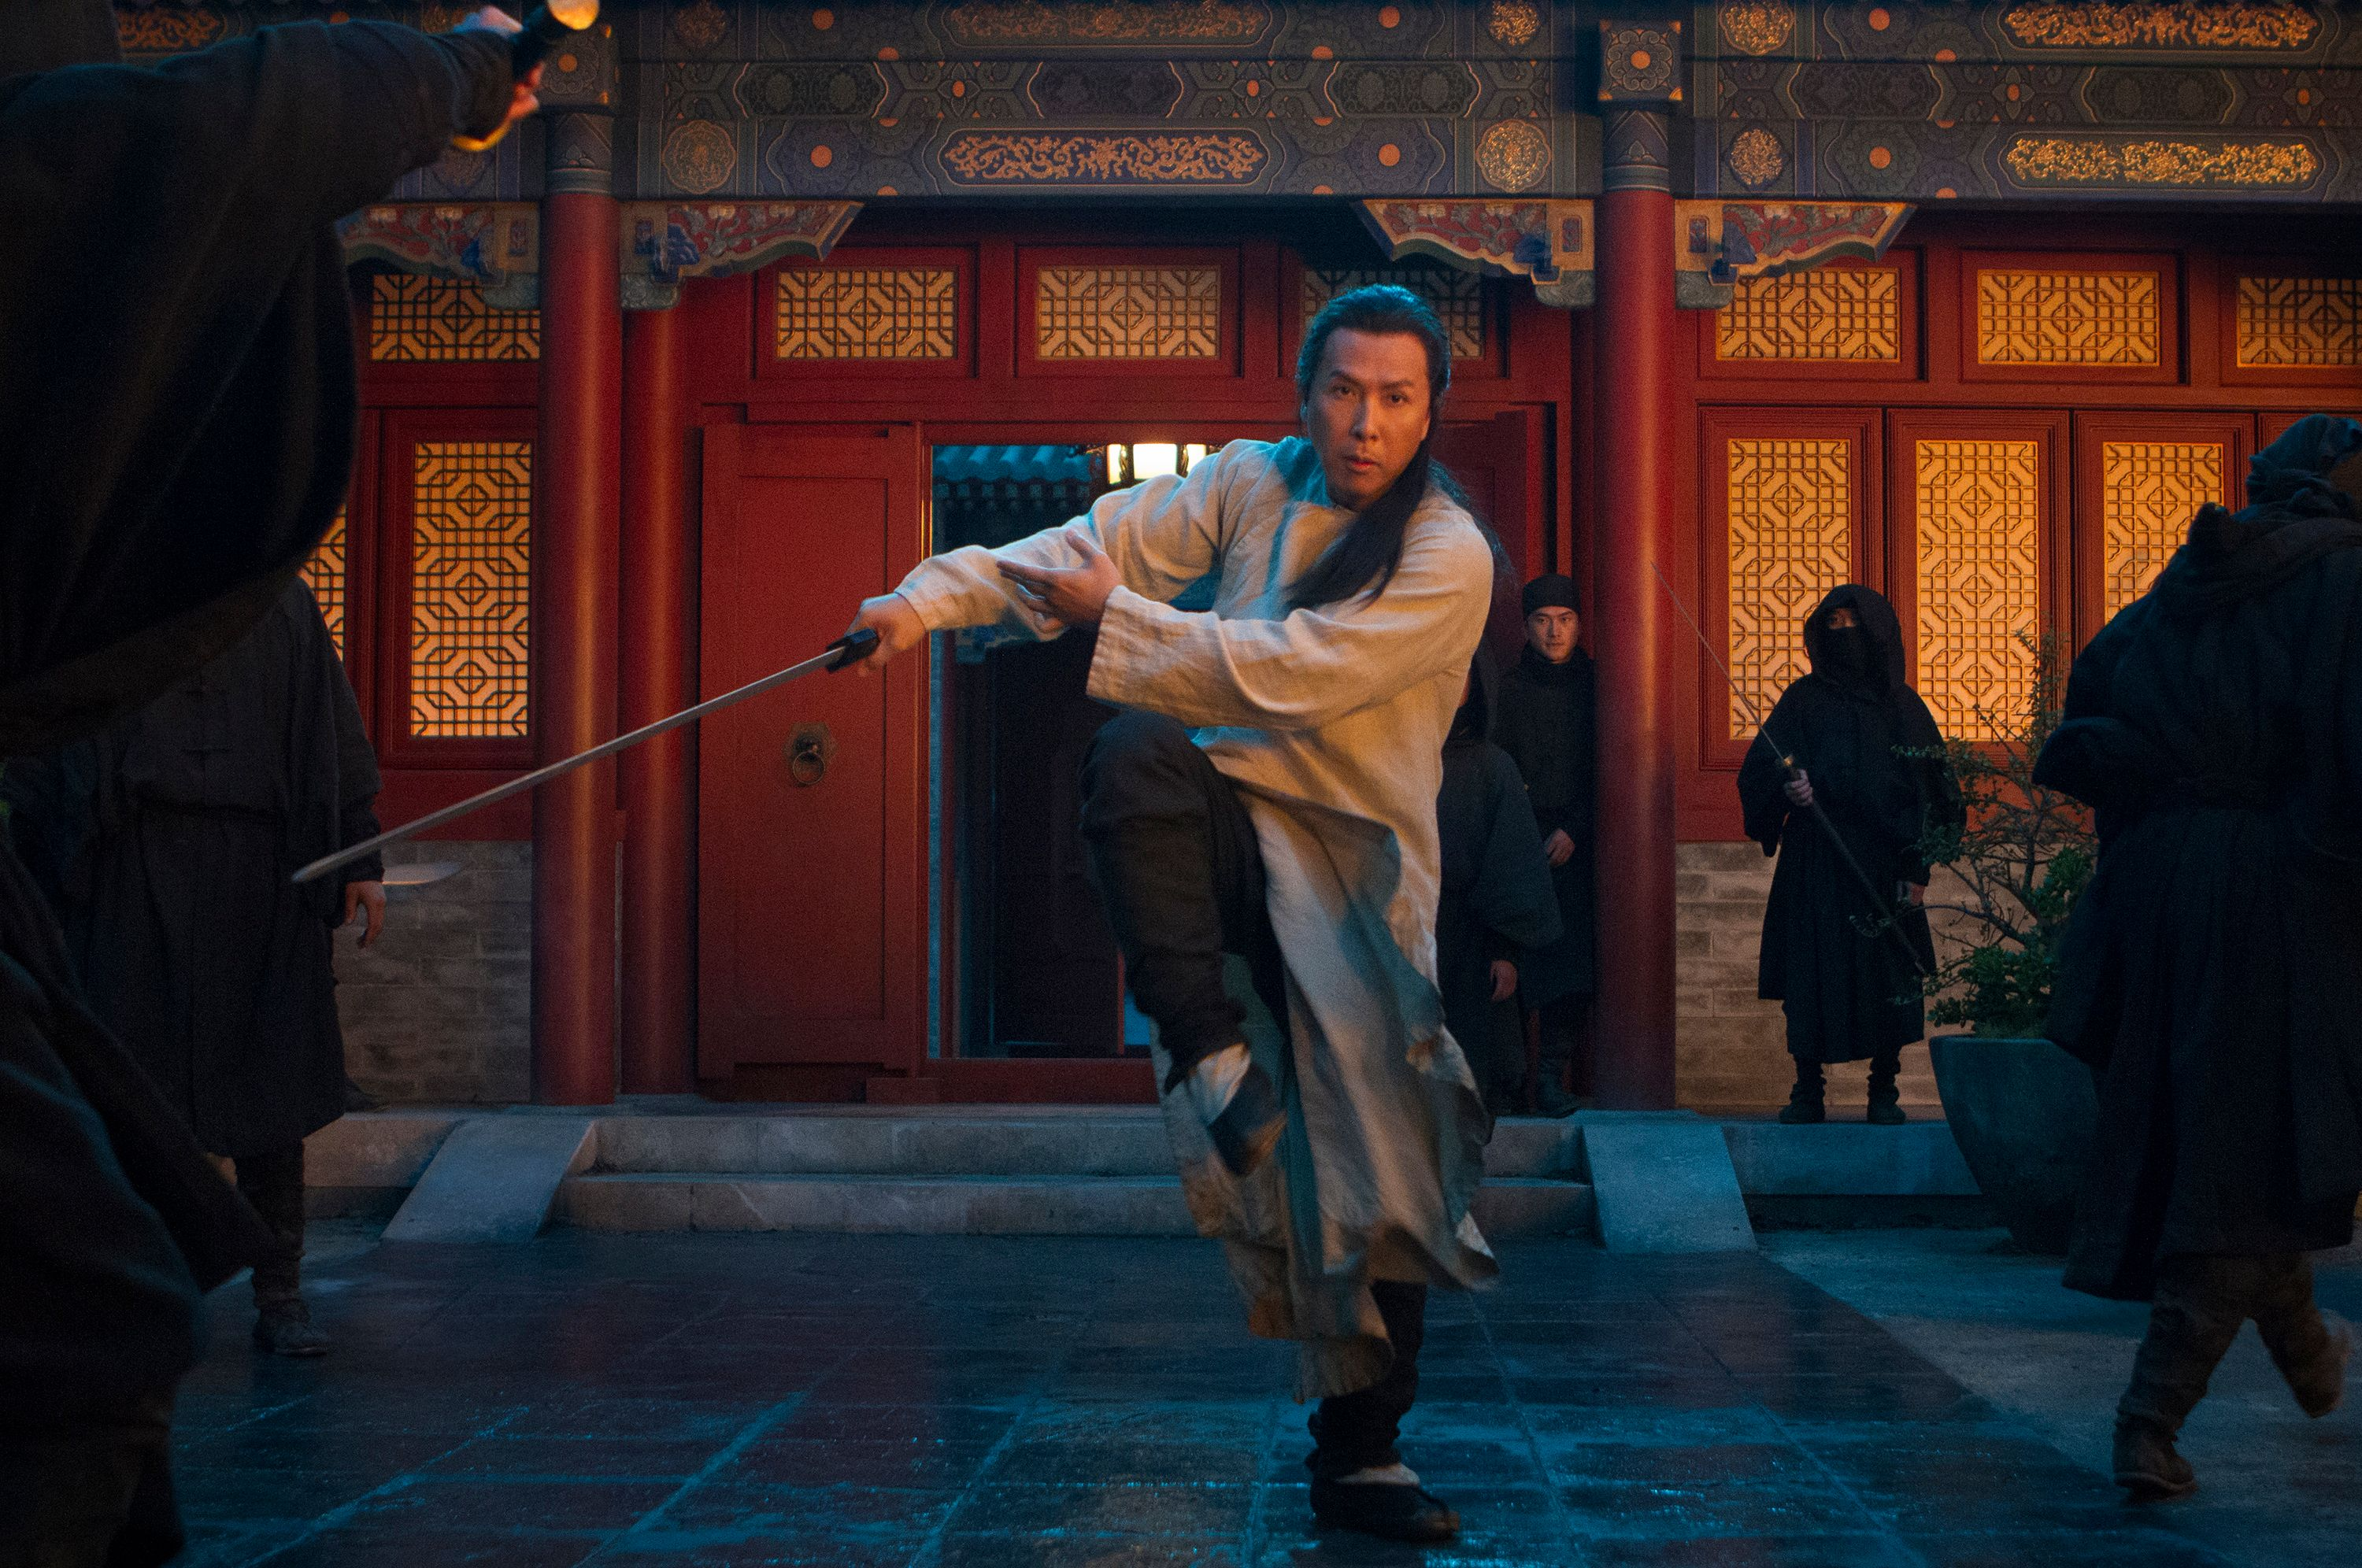 essay on crouching tiger hidden dragon Critics across america are hailing ang lee's luminous martial-arts fantasy epic  crouching tiger, hidden dragon as one of the best films of 2000 — many.